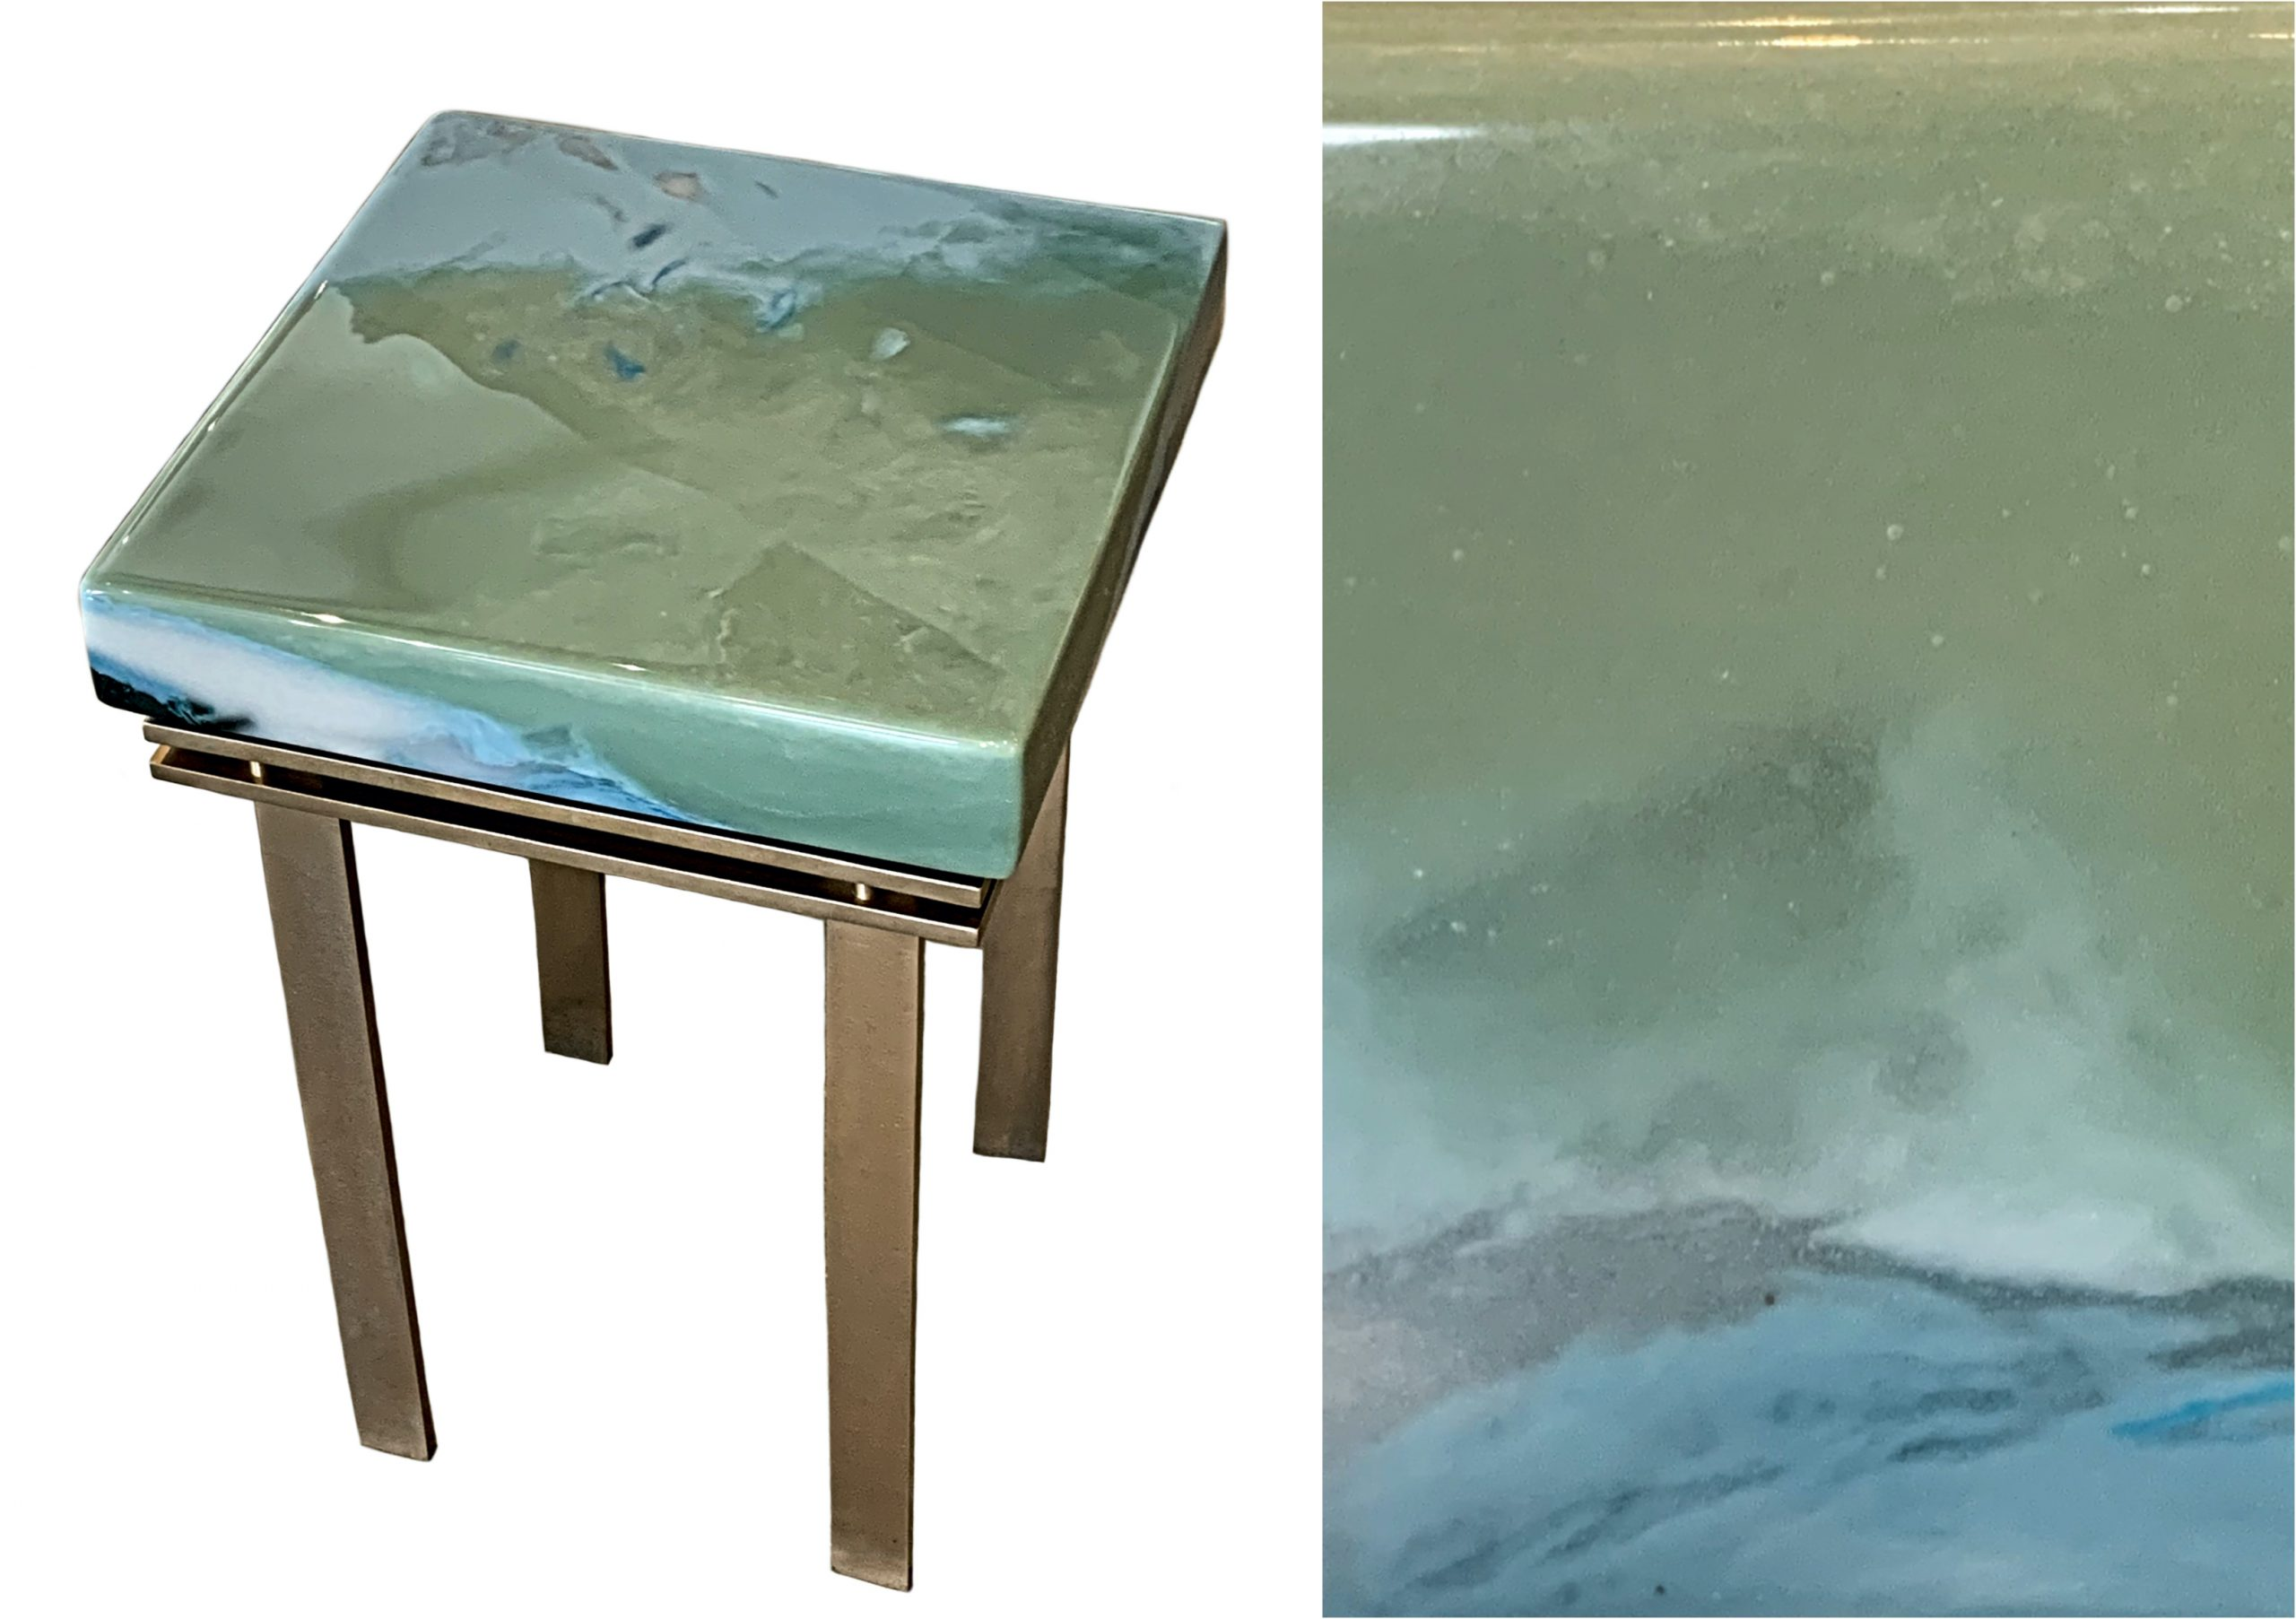 Elements, cast glass and bronze side table by Heather Cuell | Effusion Art Gallery + Cast Glass Studio, Invermere BC